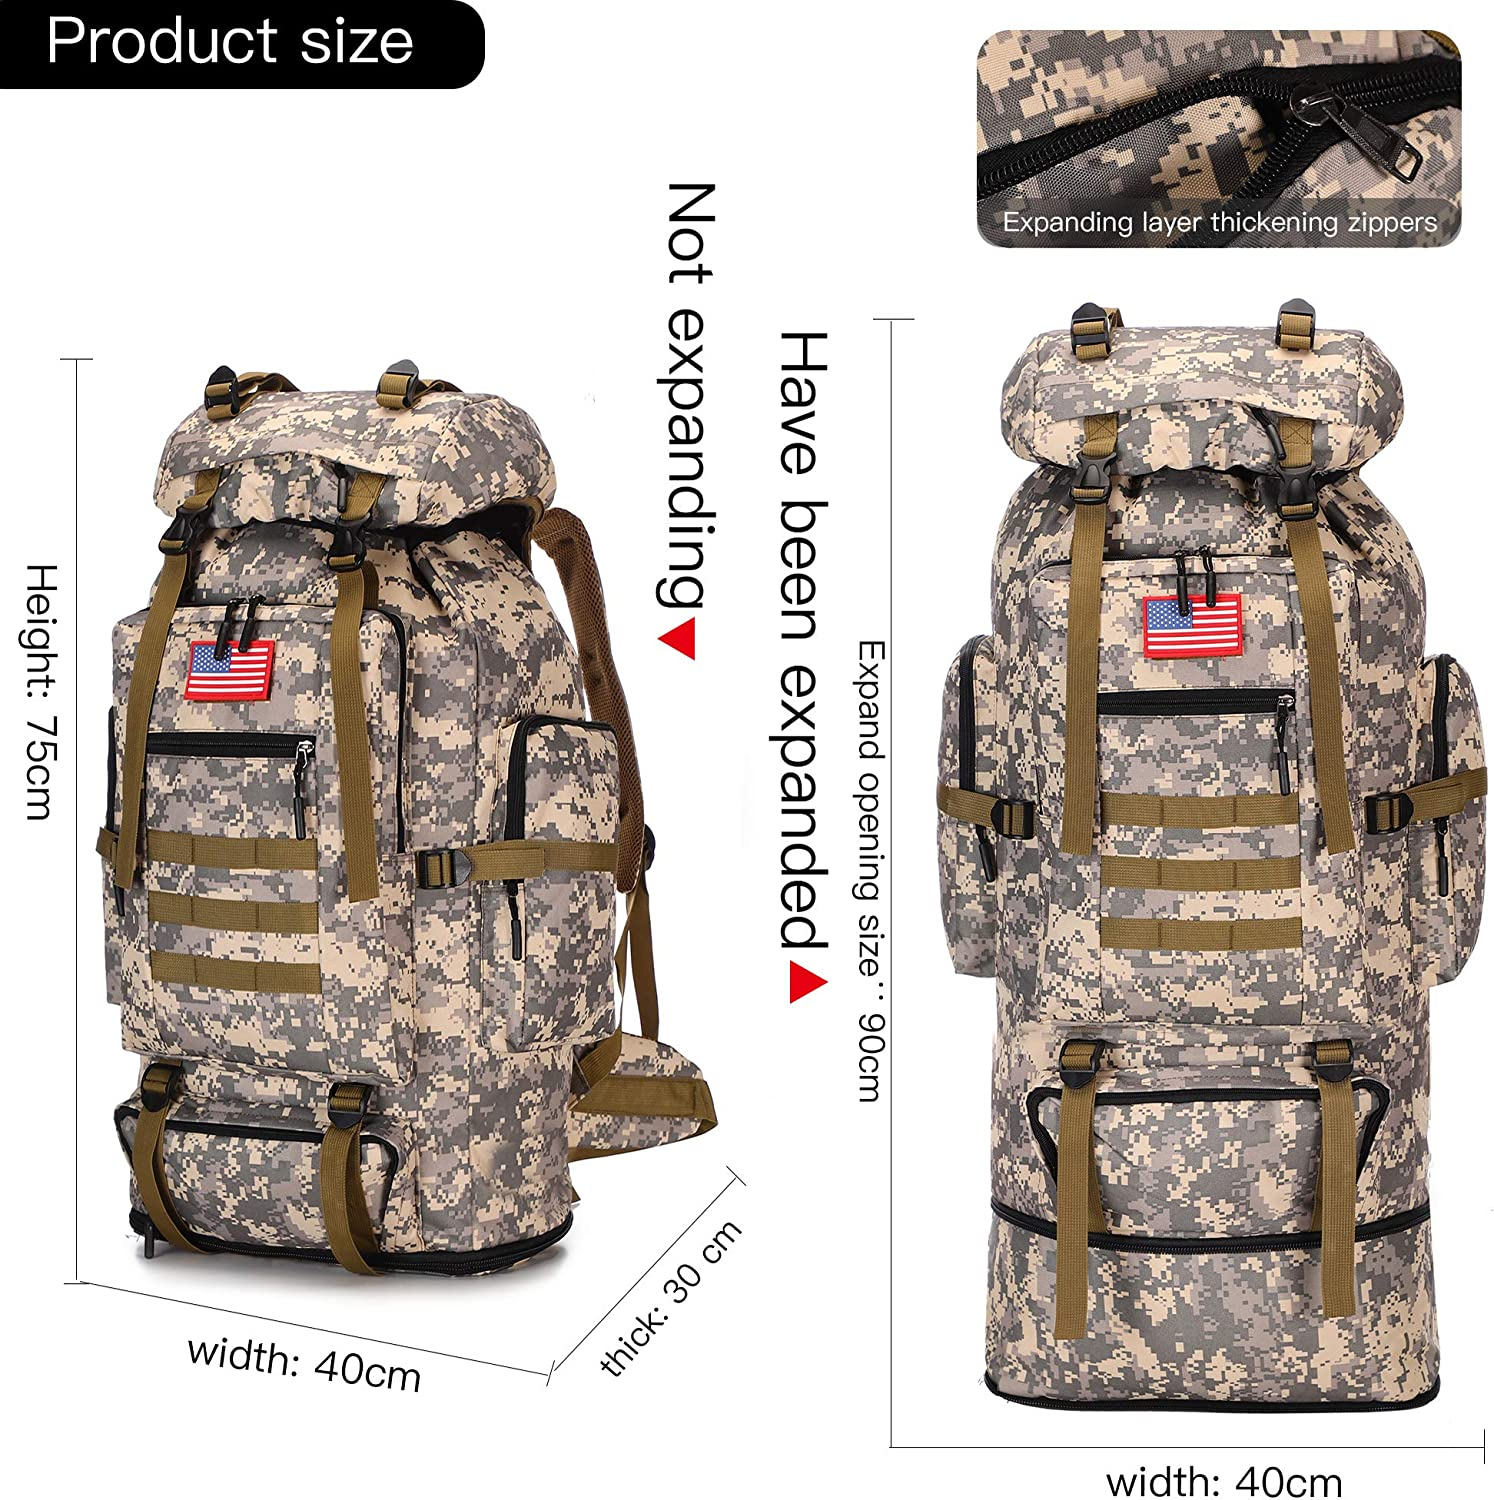 70L//100L Hiking Camping Backpack MOLLE Rucksack Waterproof Daypack for Traveling